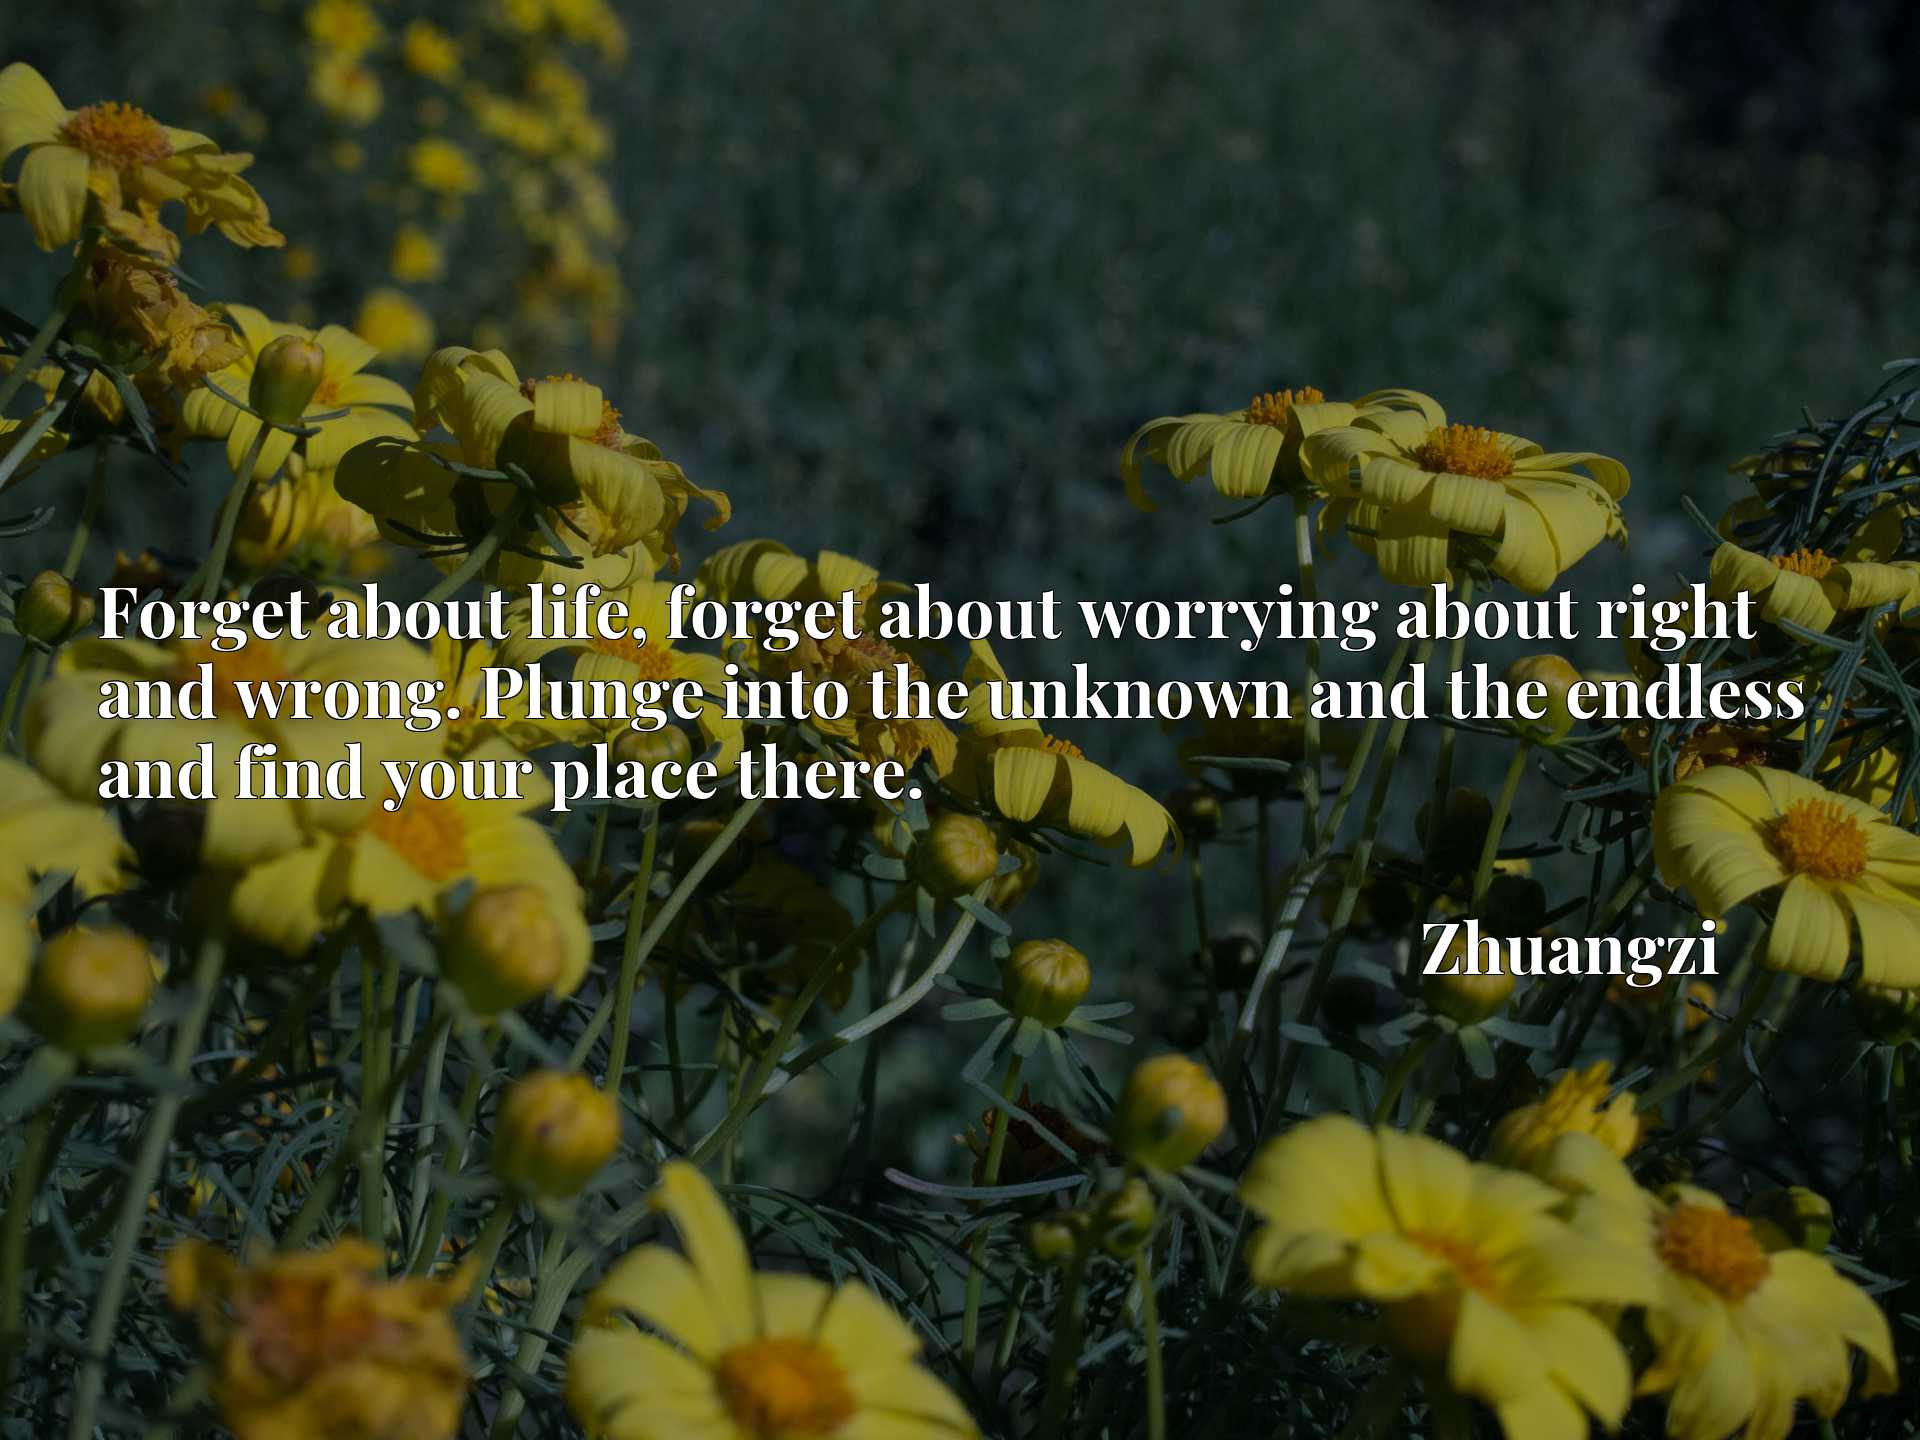 Quote Picture :Forget about life, forget about worrying about right and wrong. Plunge into the unknown and the endless and find your place there.